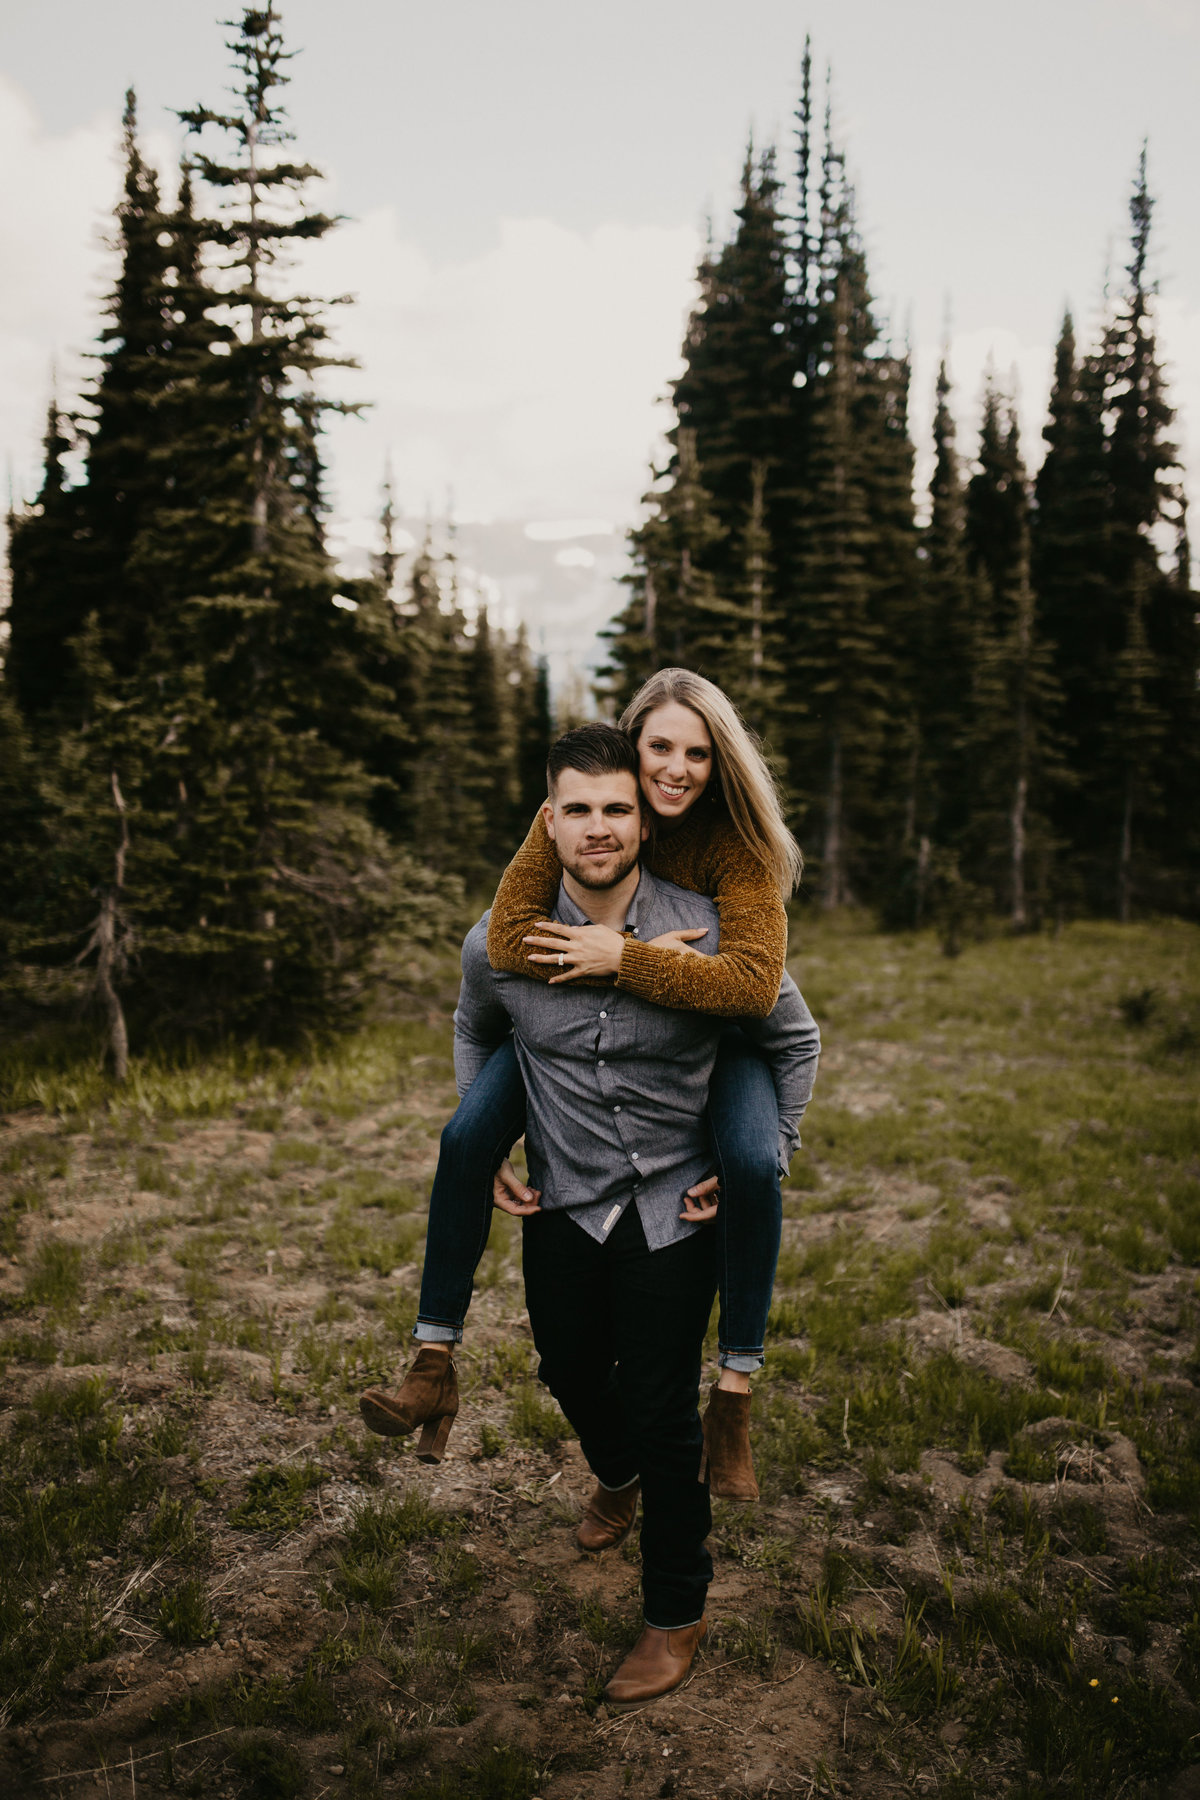 Marnie_Cornell_Photography_Engagement_Mount_Rainier_RK-130